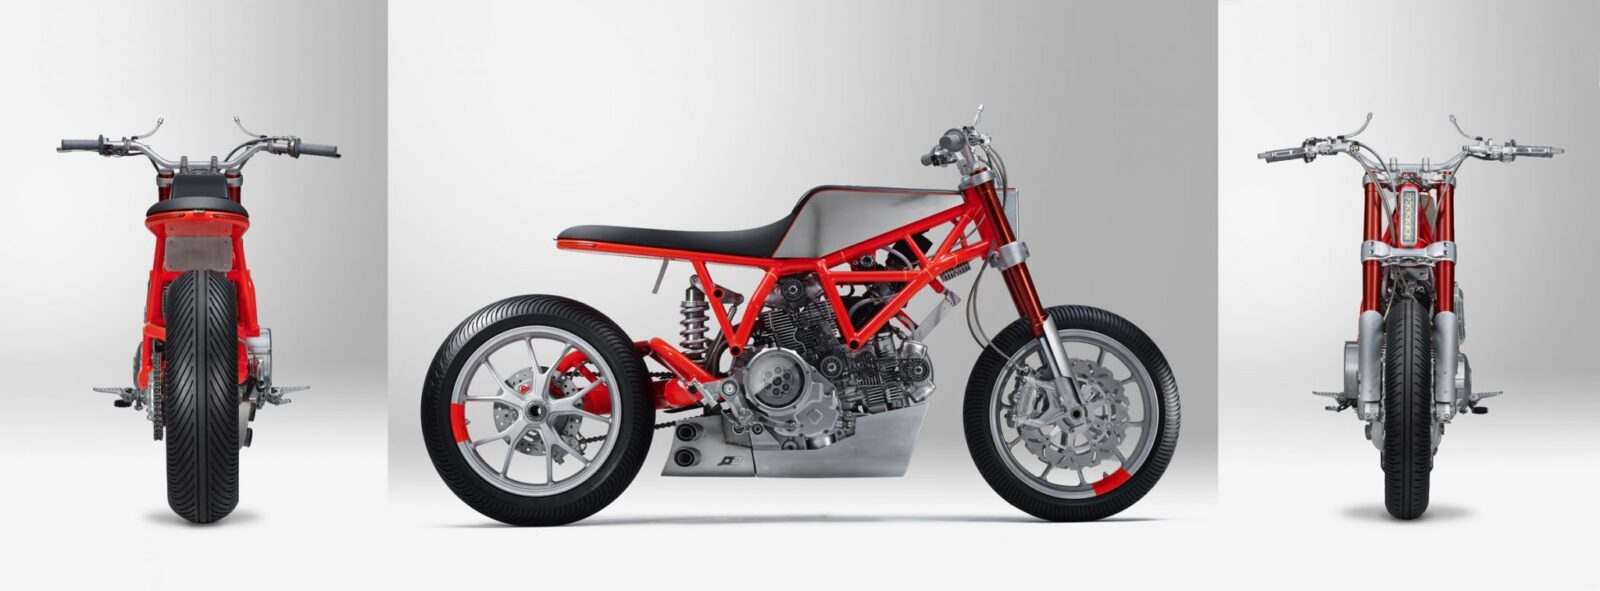 Ducati Scrambler 1600x591 - Ducati HyperScrambler by Untitled Motorcycles